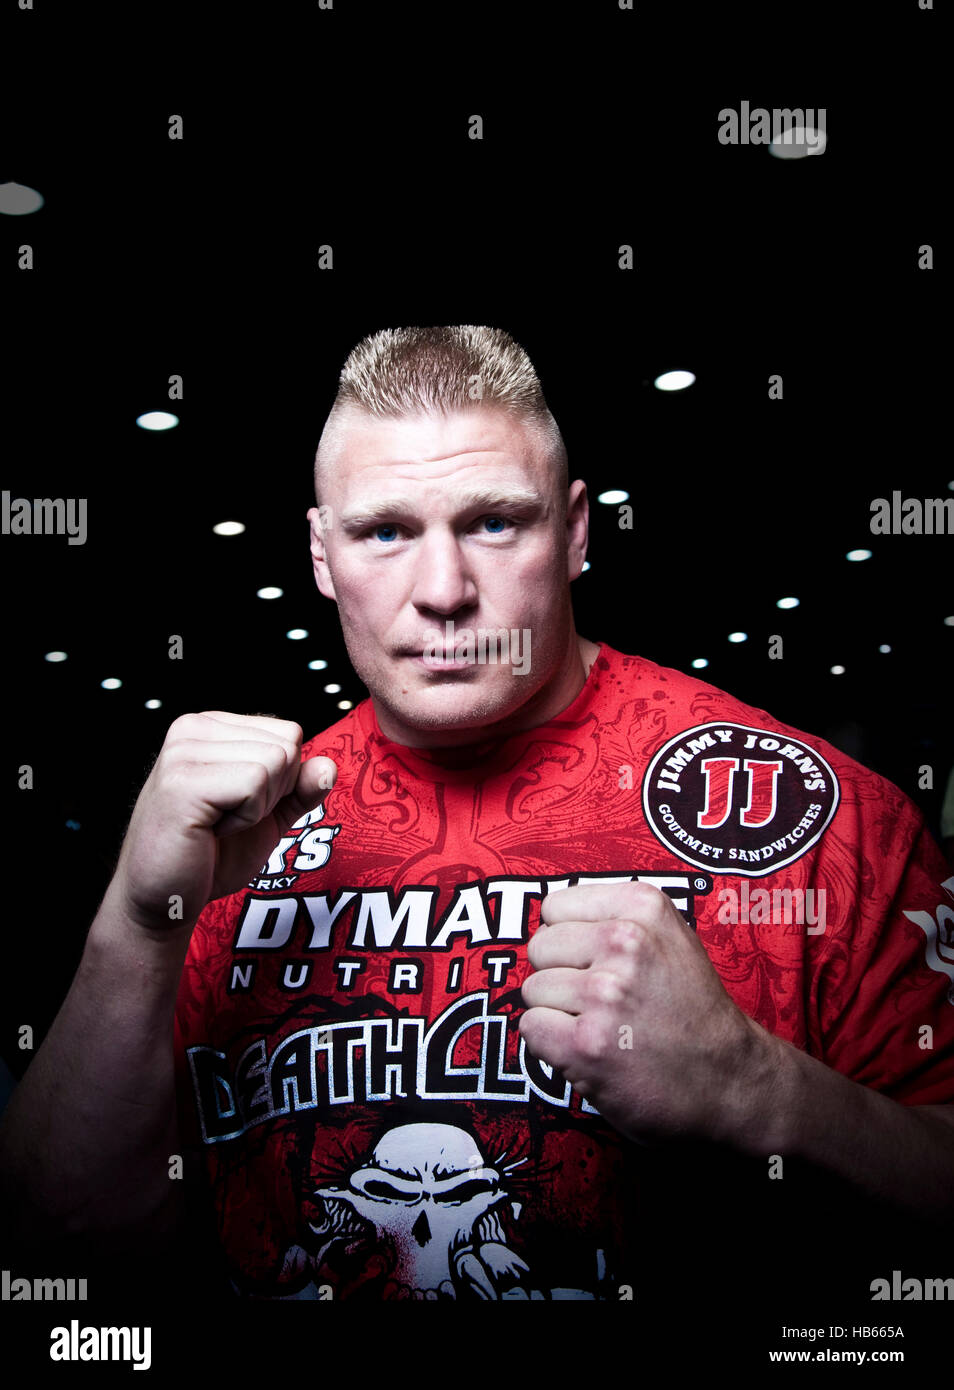 brock lesnar high resolution stock photography and images alamy https www alamy com stock photo ufc fighter brock lesnar during a portrait session before ufc 116 127370358 html